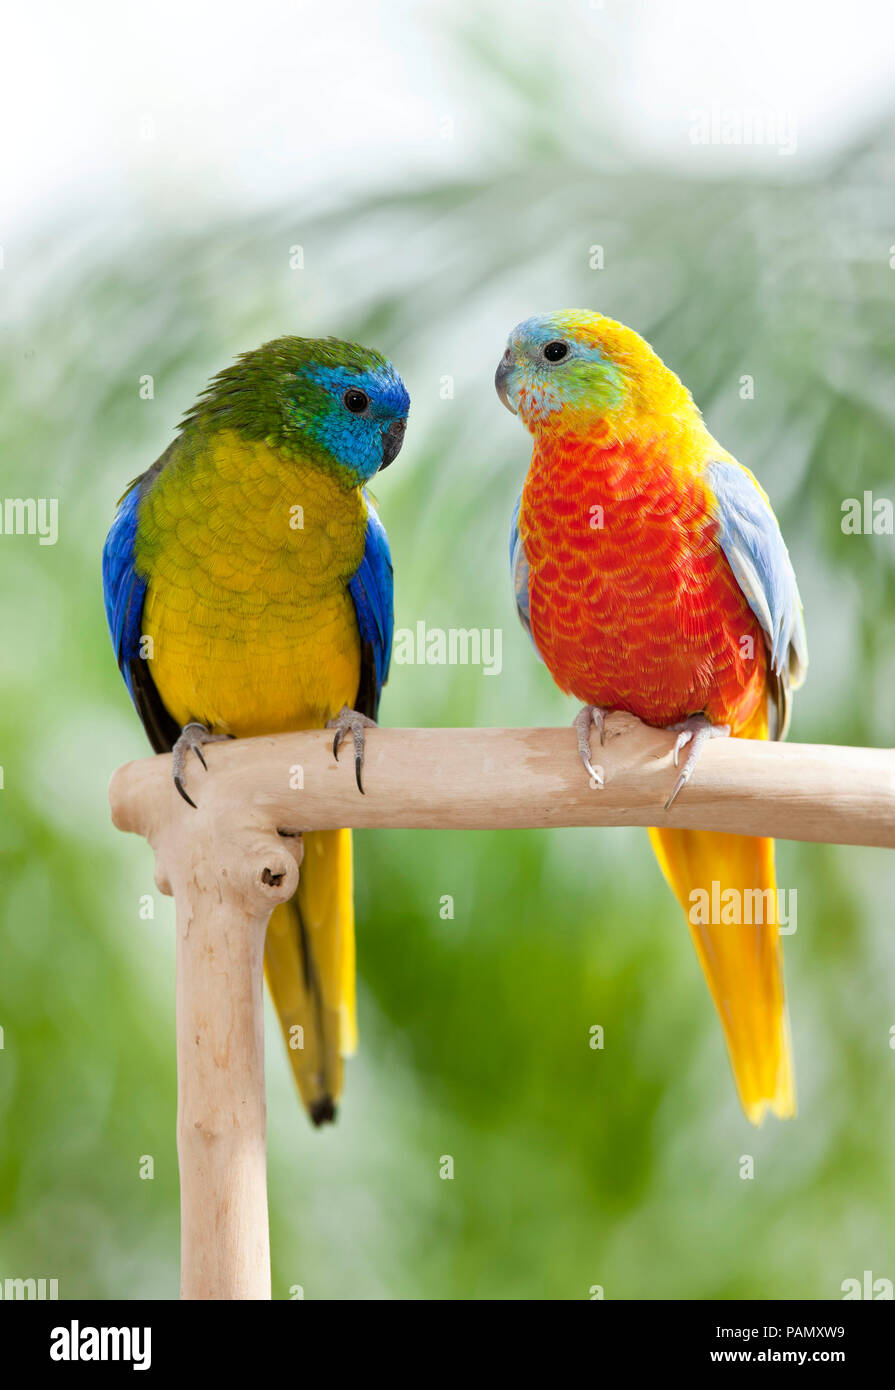 Turquoise Parrot (Neophema pulchella). Two birds on a perch. Germany. - Stock Image